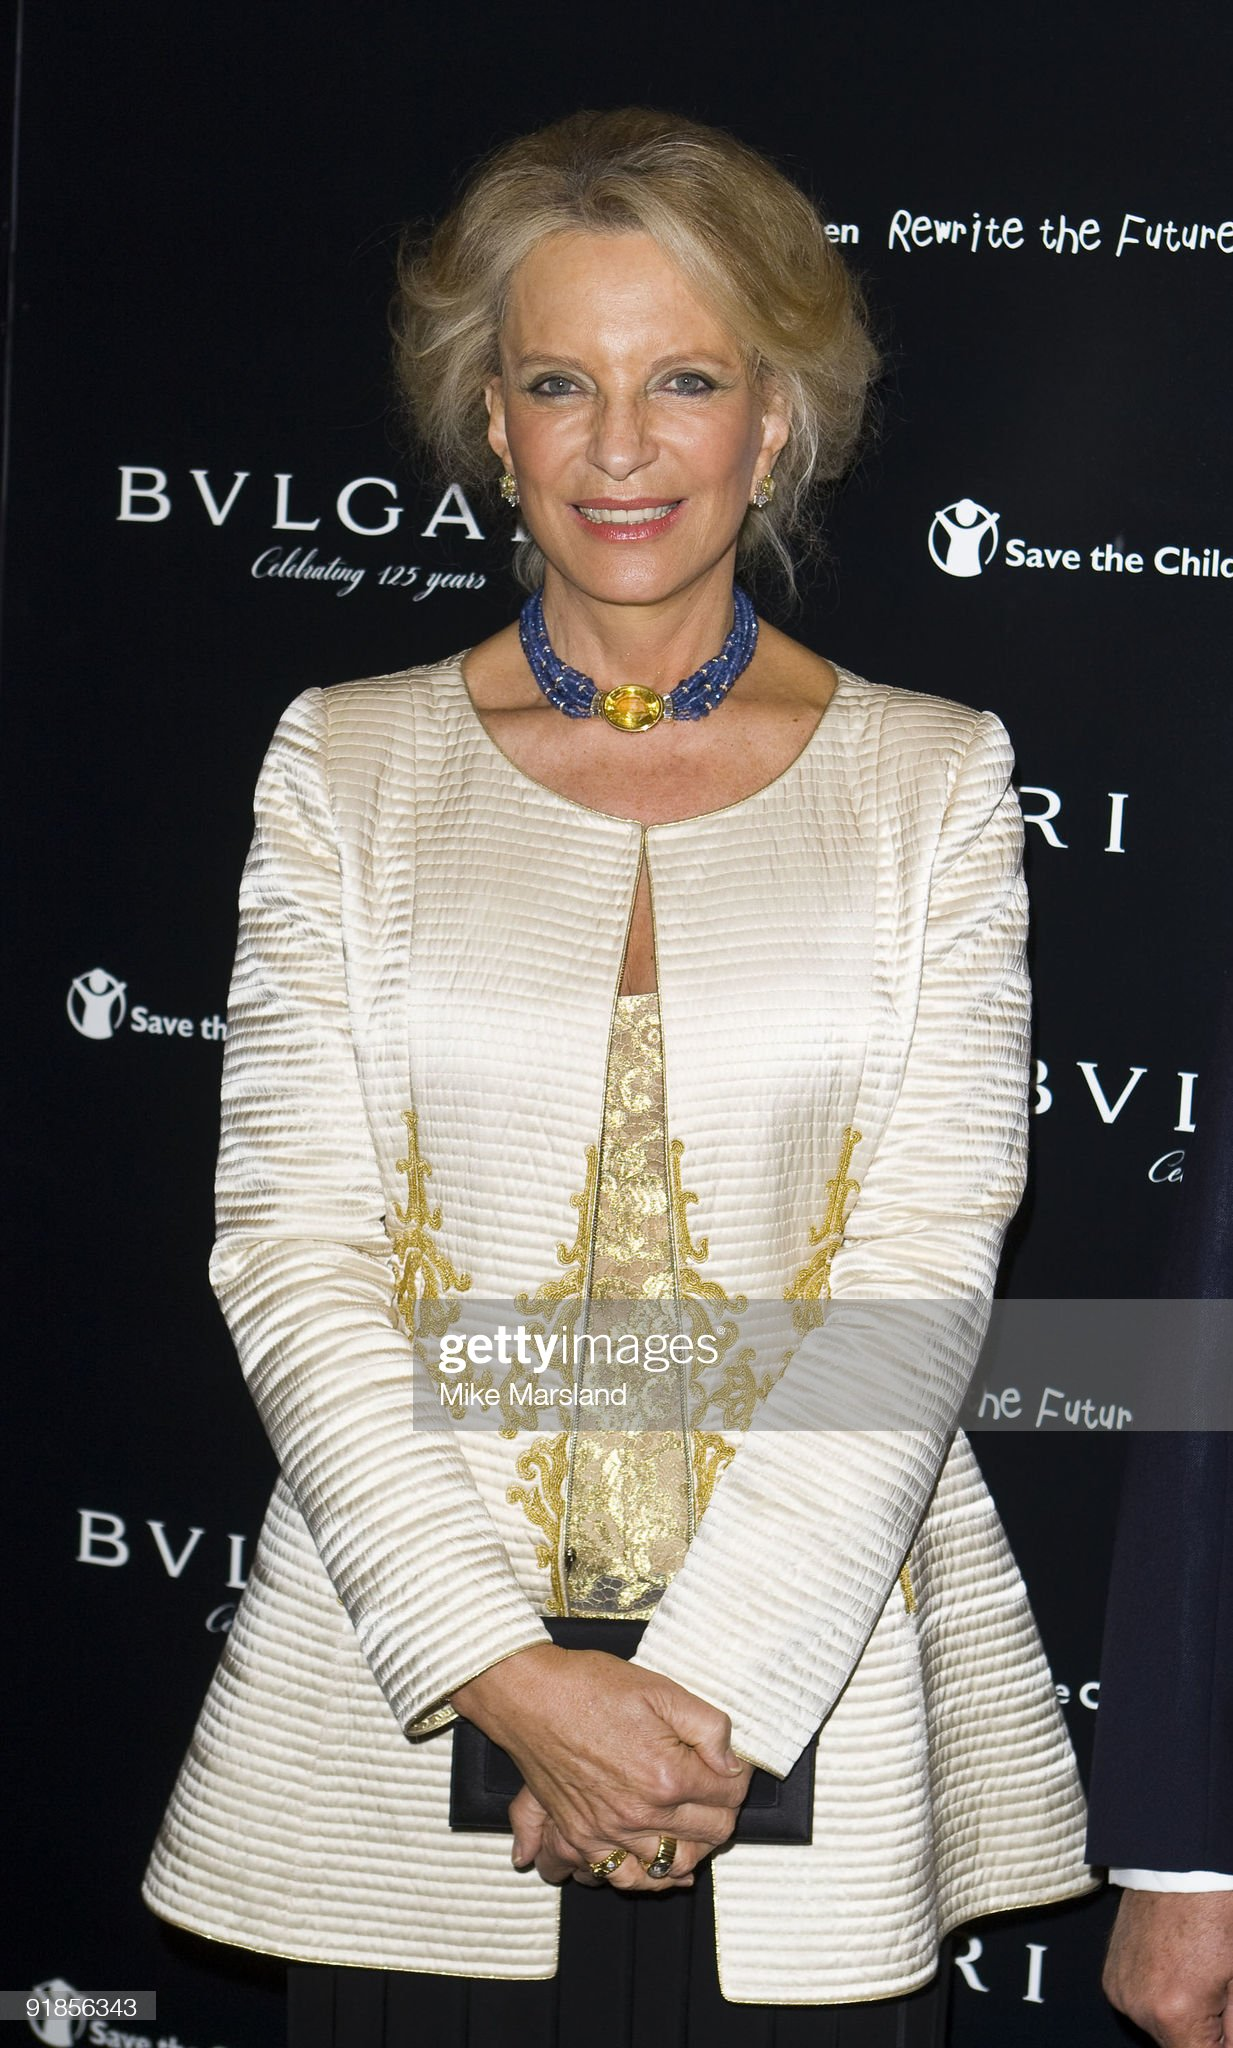 Vogue/Bvlgari - Charity Reception : News Photo